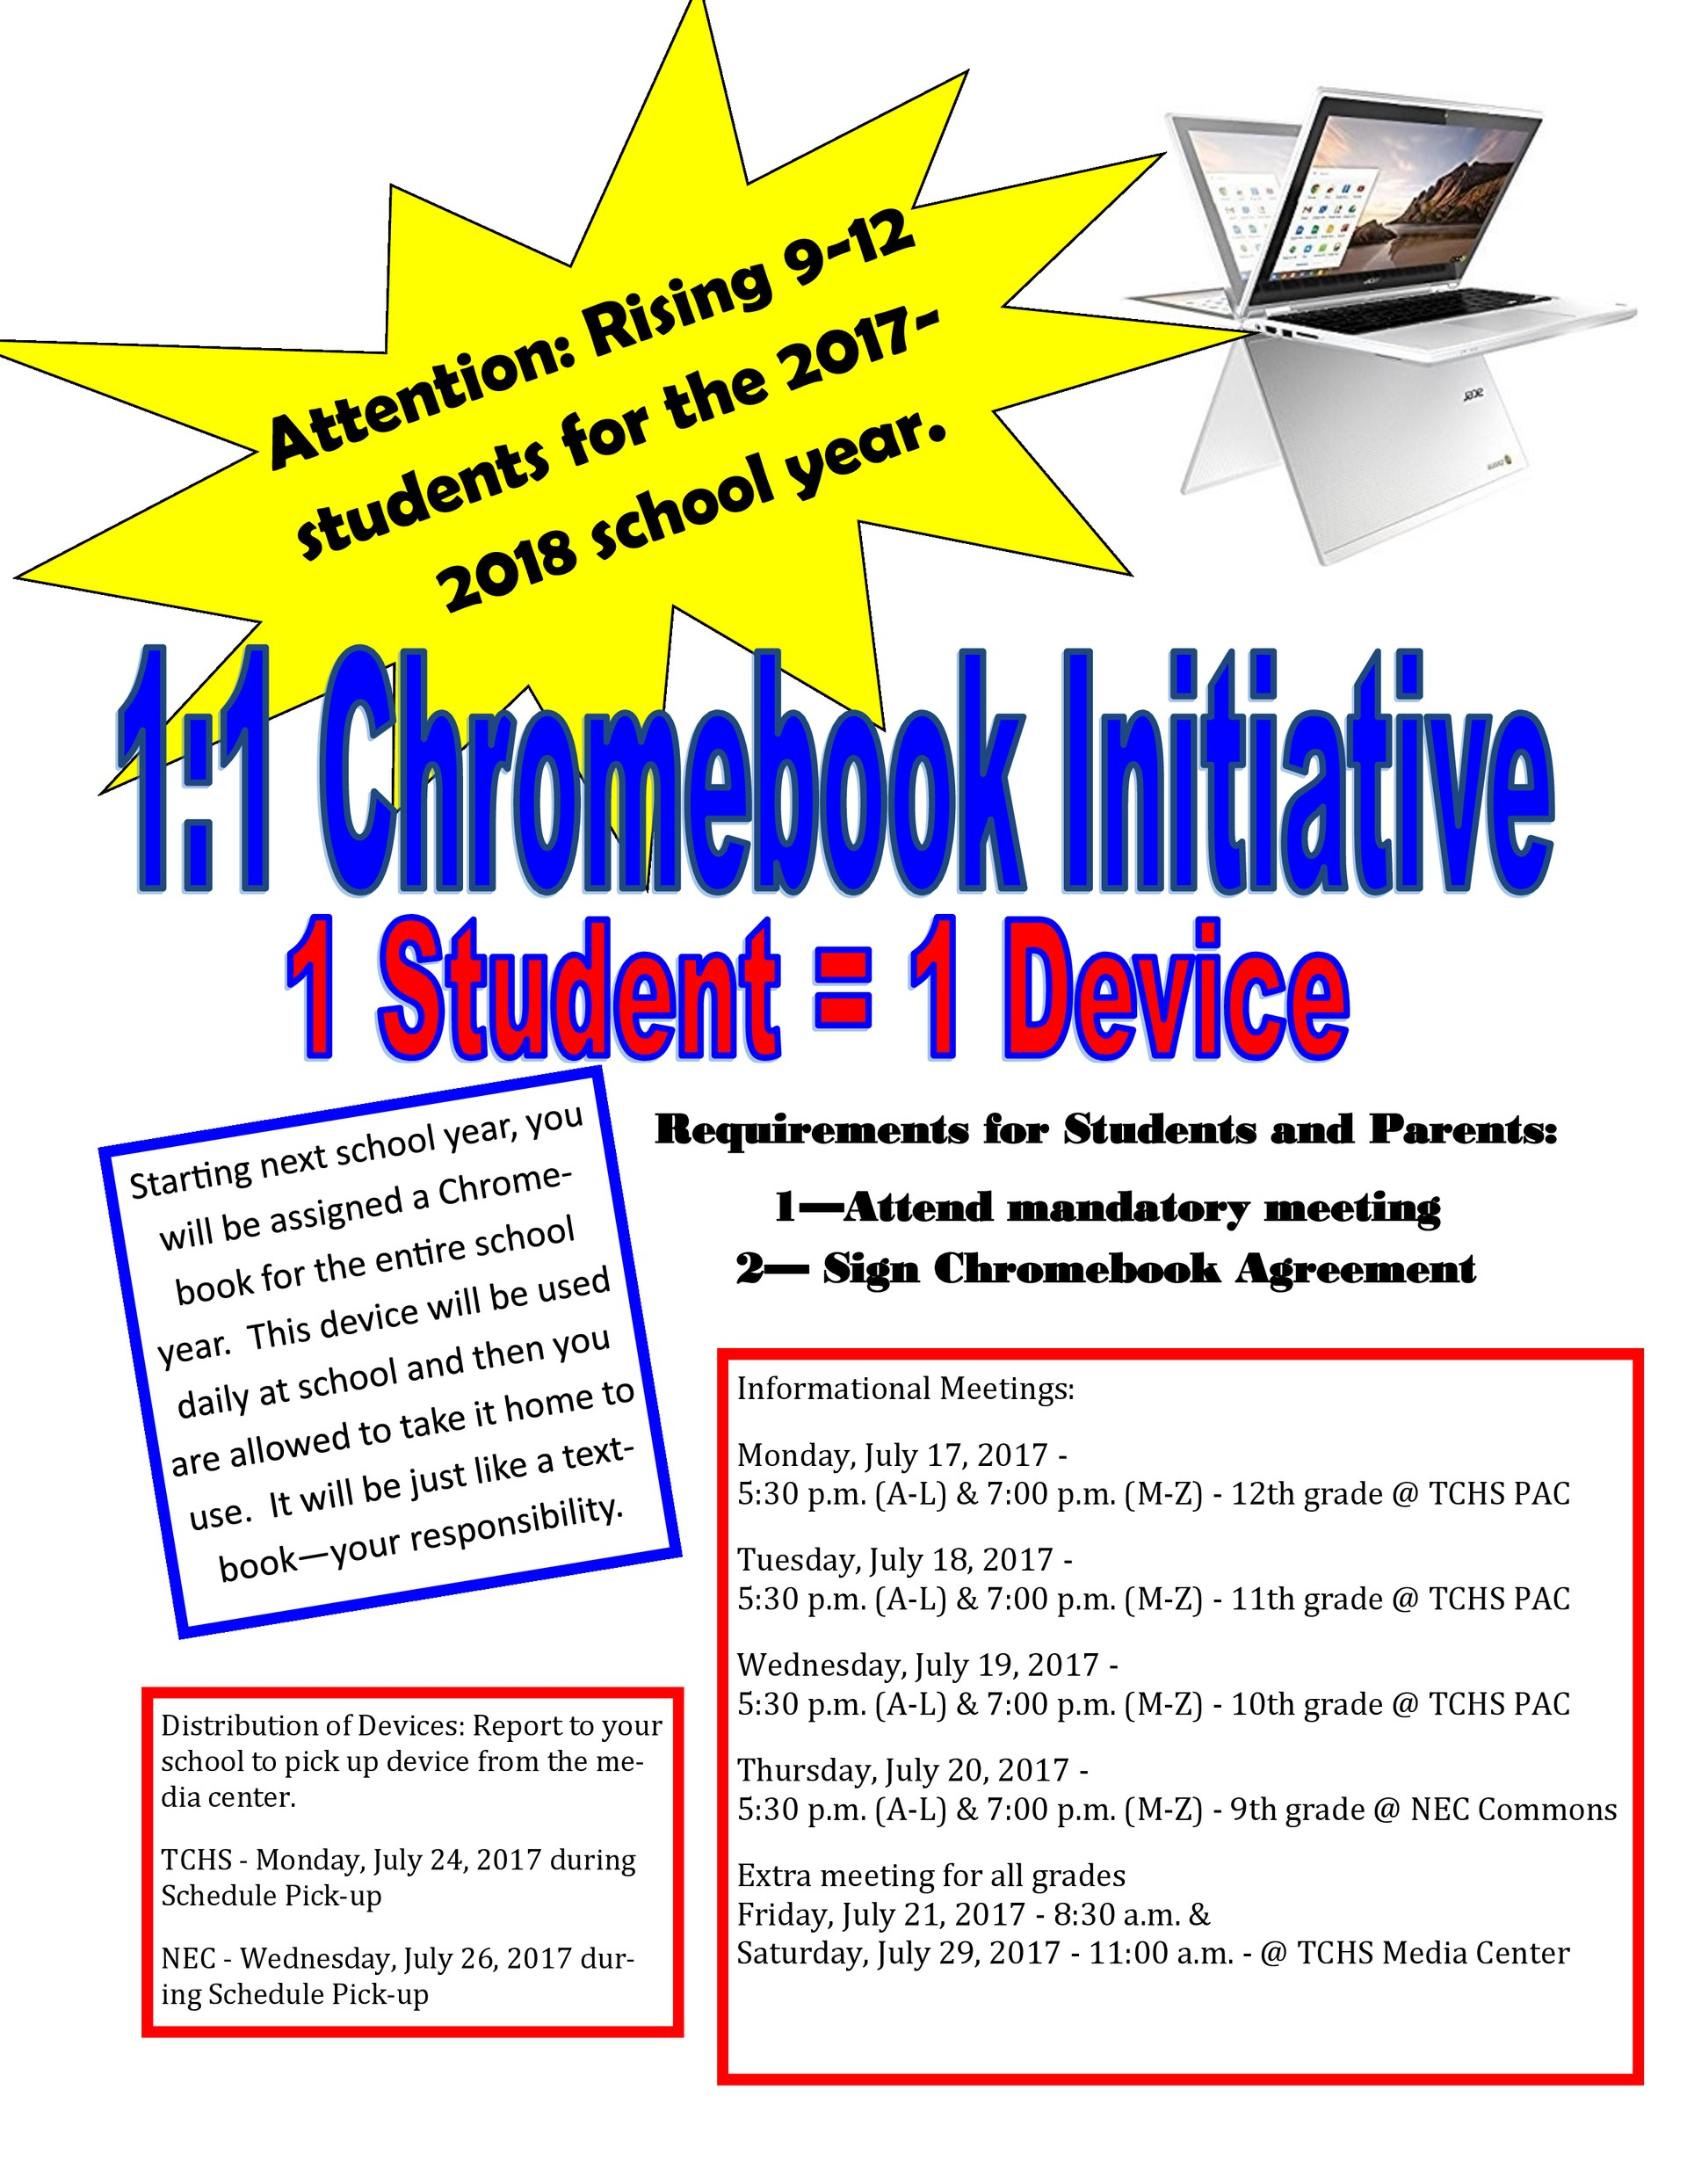 Chromebook Initiative